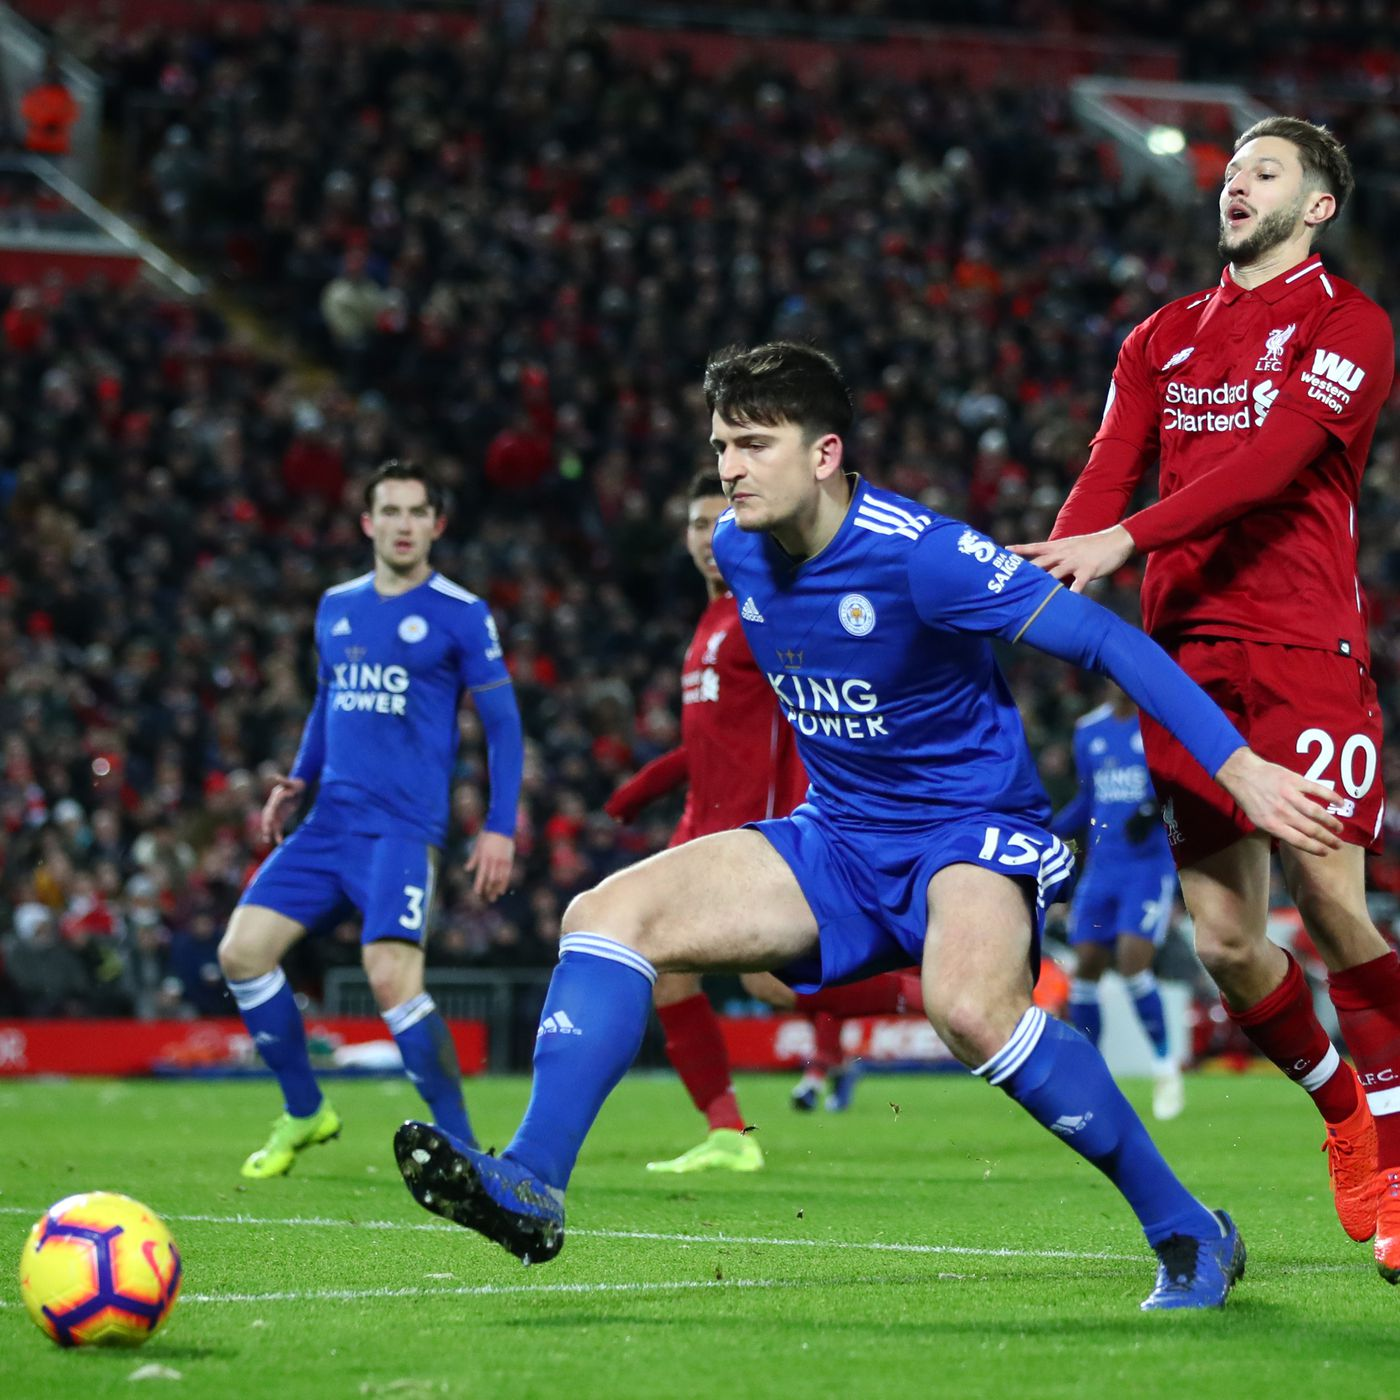 premier league player ratings liverpool 1 1 leicester city fosse posse fosse posse